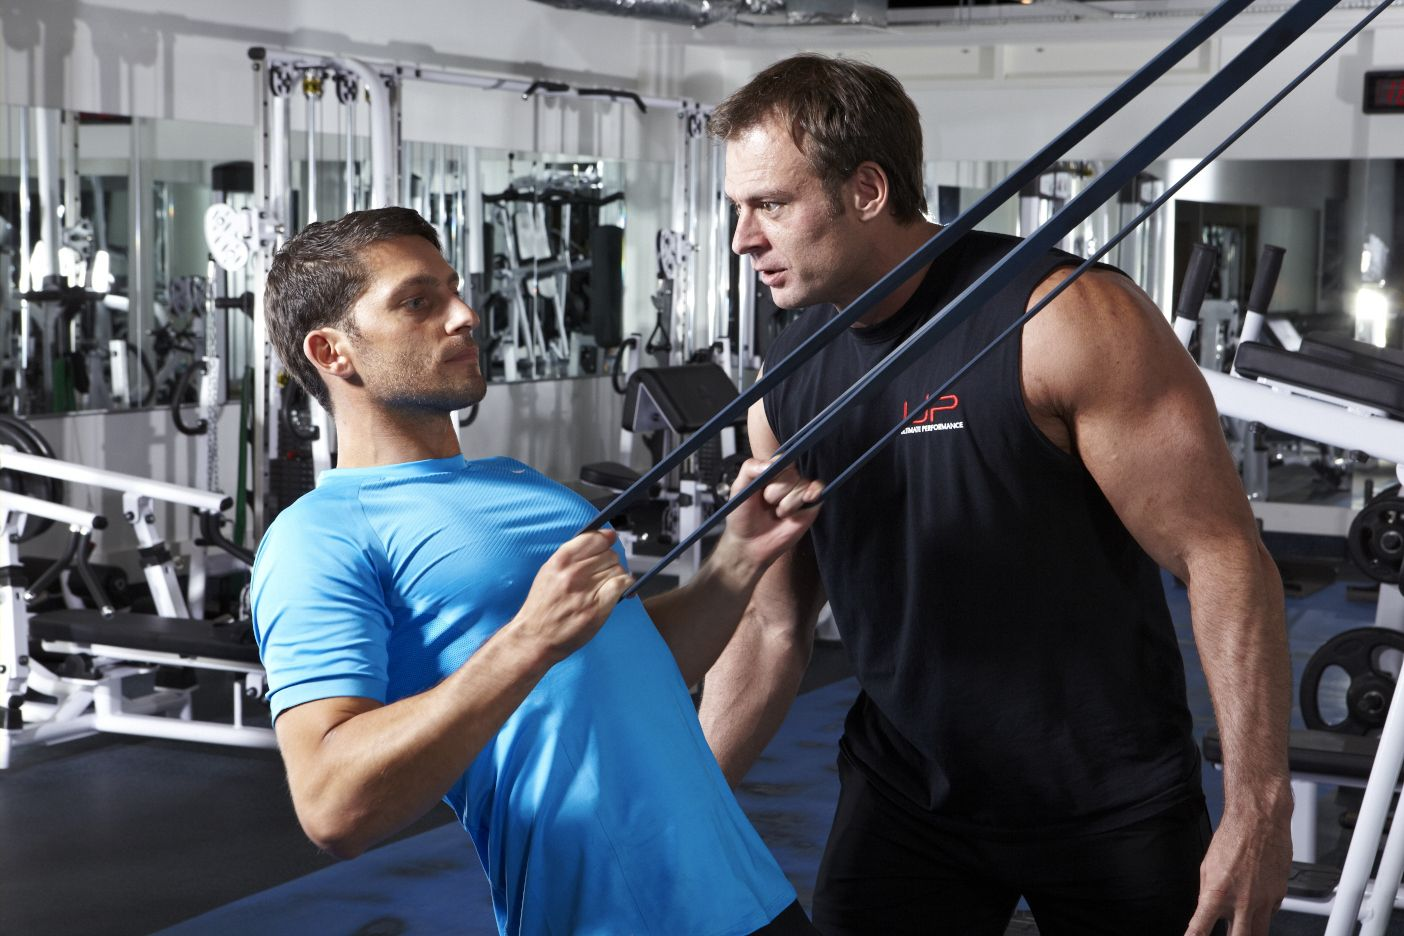 Beginner Programme Design For Strength and Muscle Building - UP